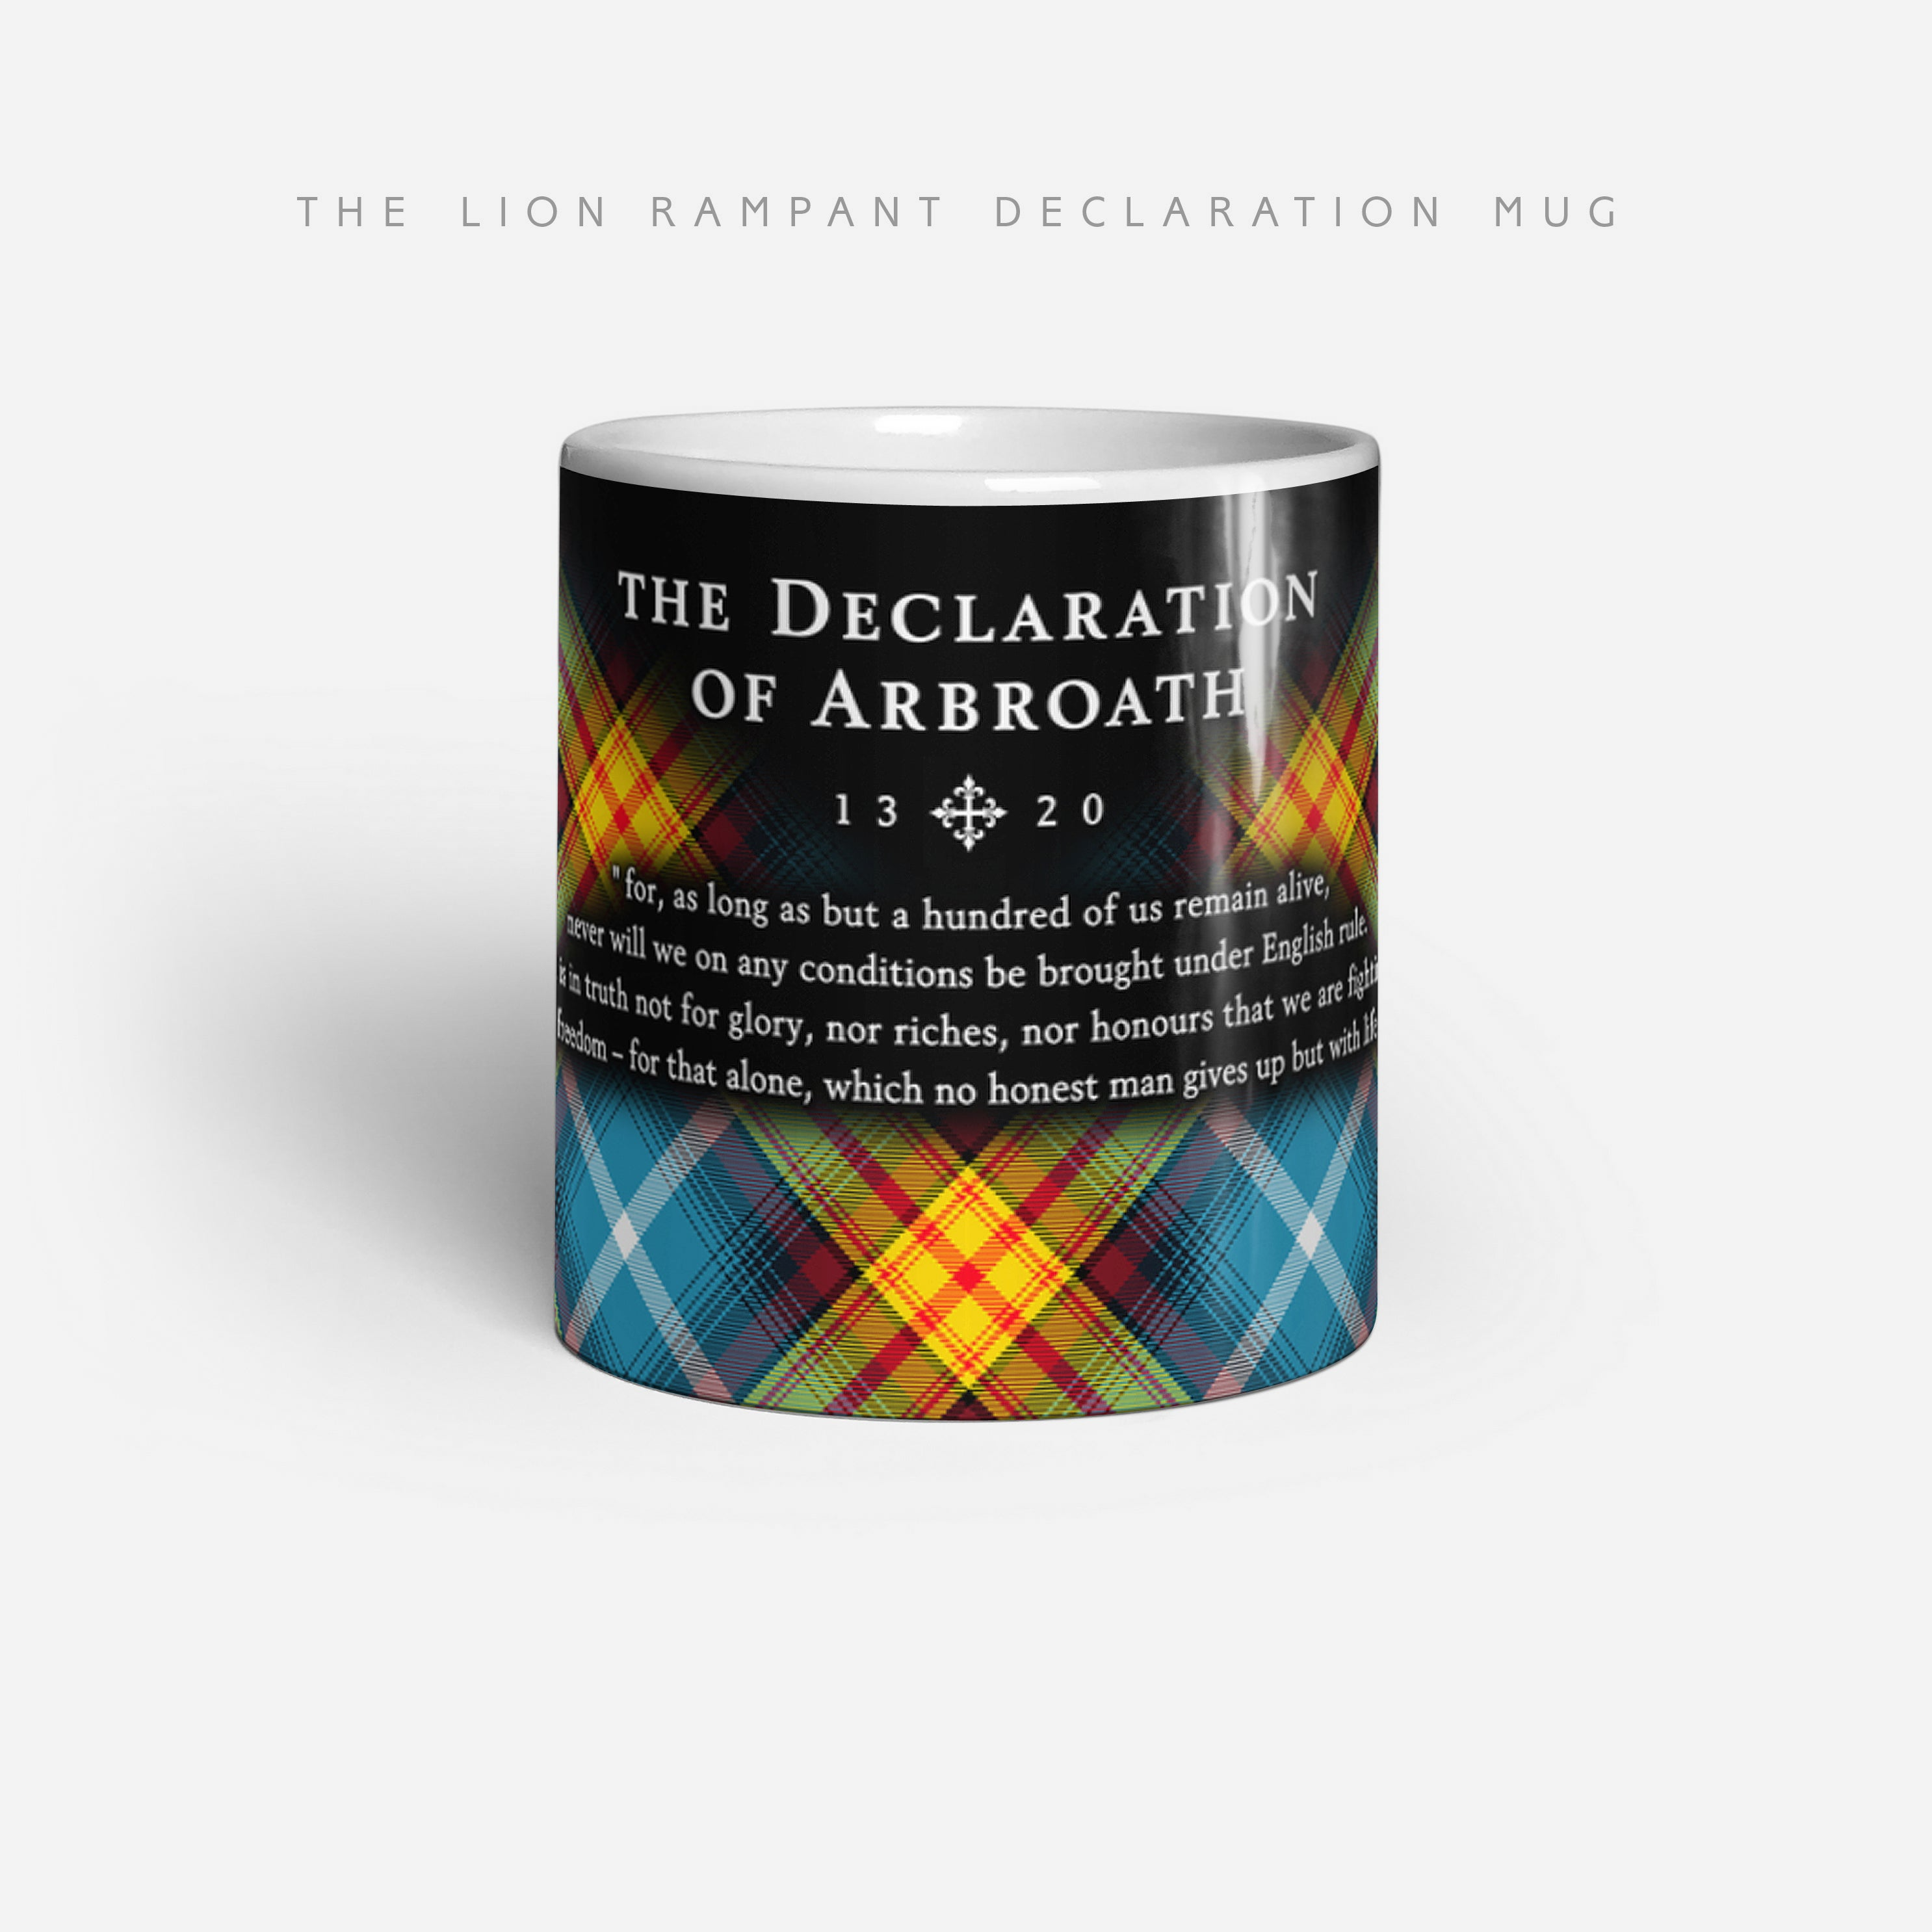 Declaration of Arbroath Tartan LION RAMPANT Mug by Steven Patrick Sim